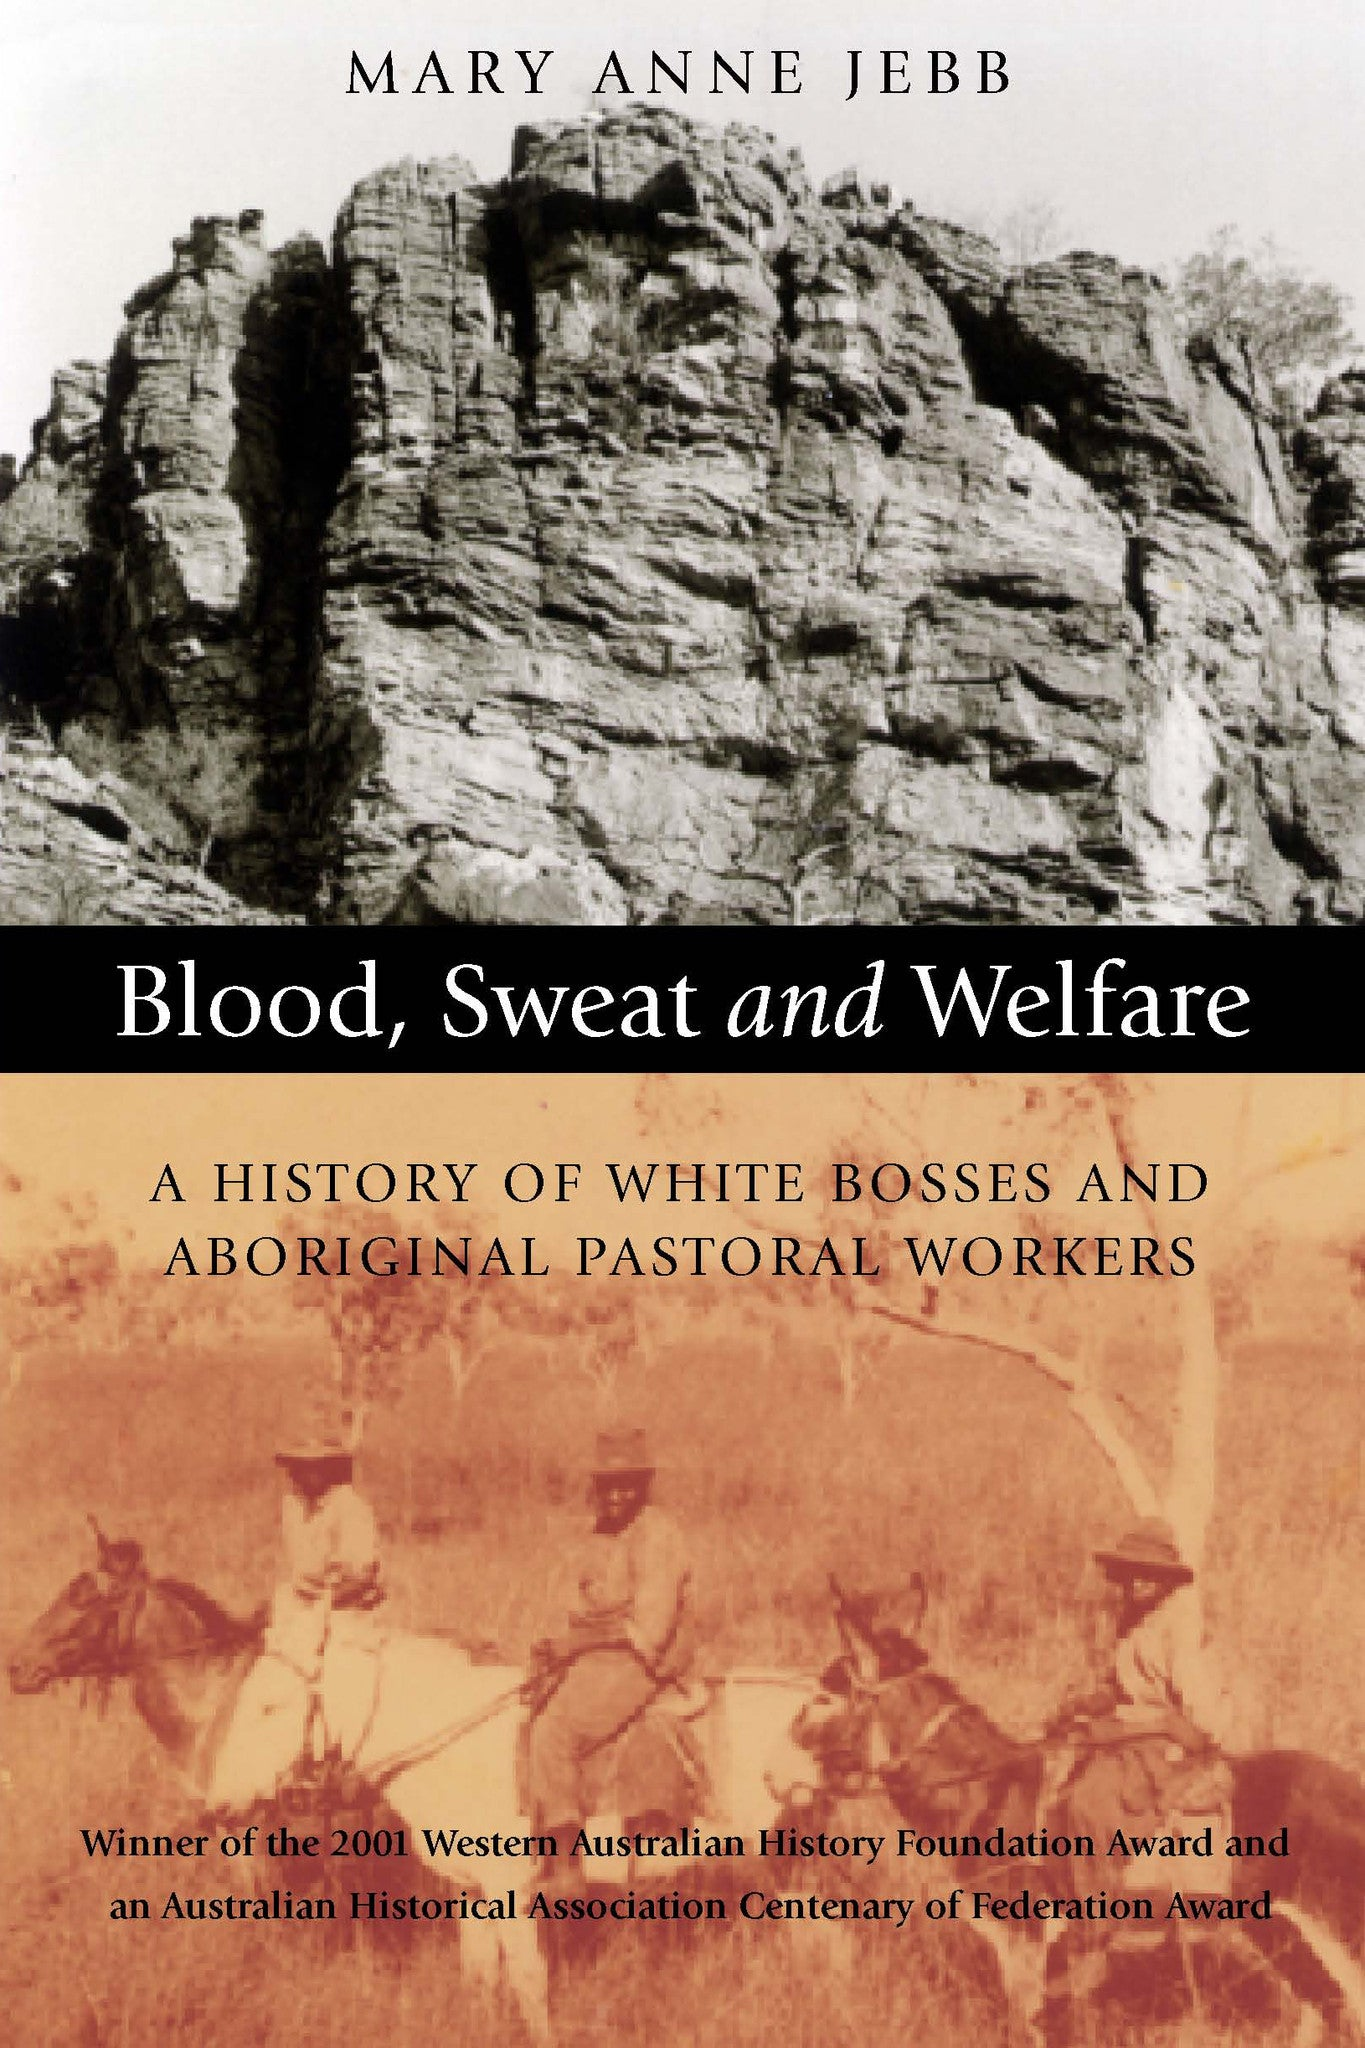 Blood, Sweat and Welfare